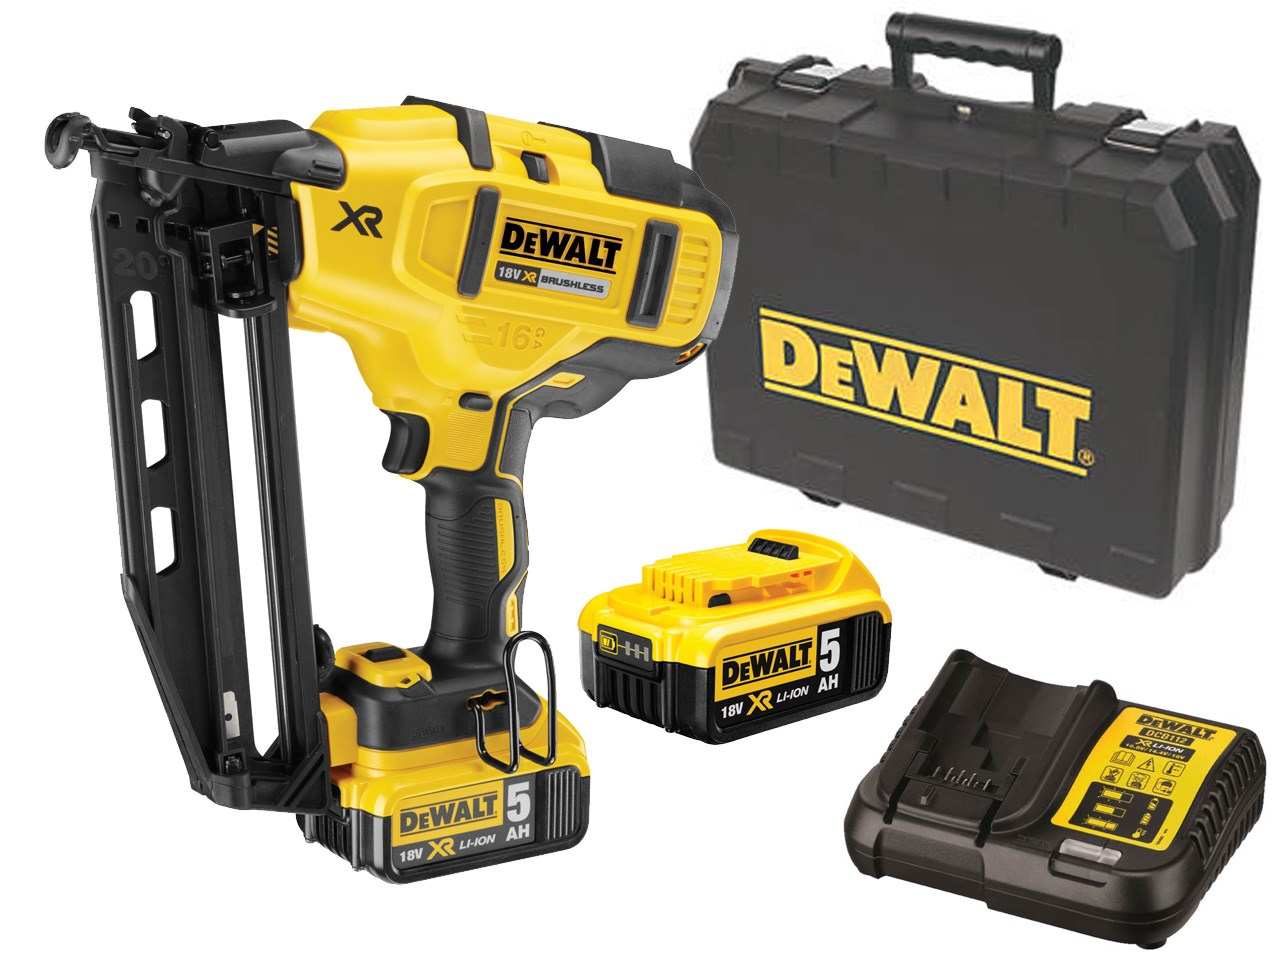 DCN660P2 18V 2ND FIX NAILER (Reconditioned)